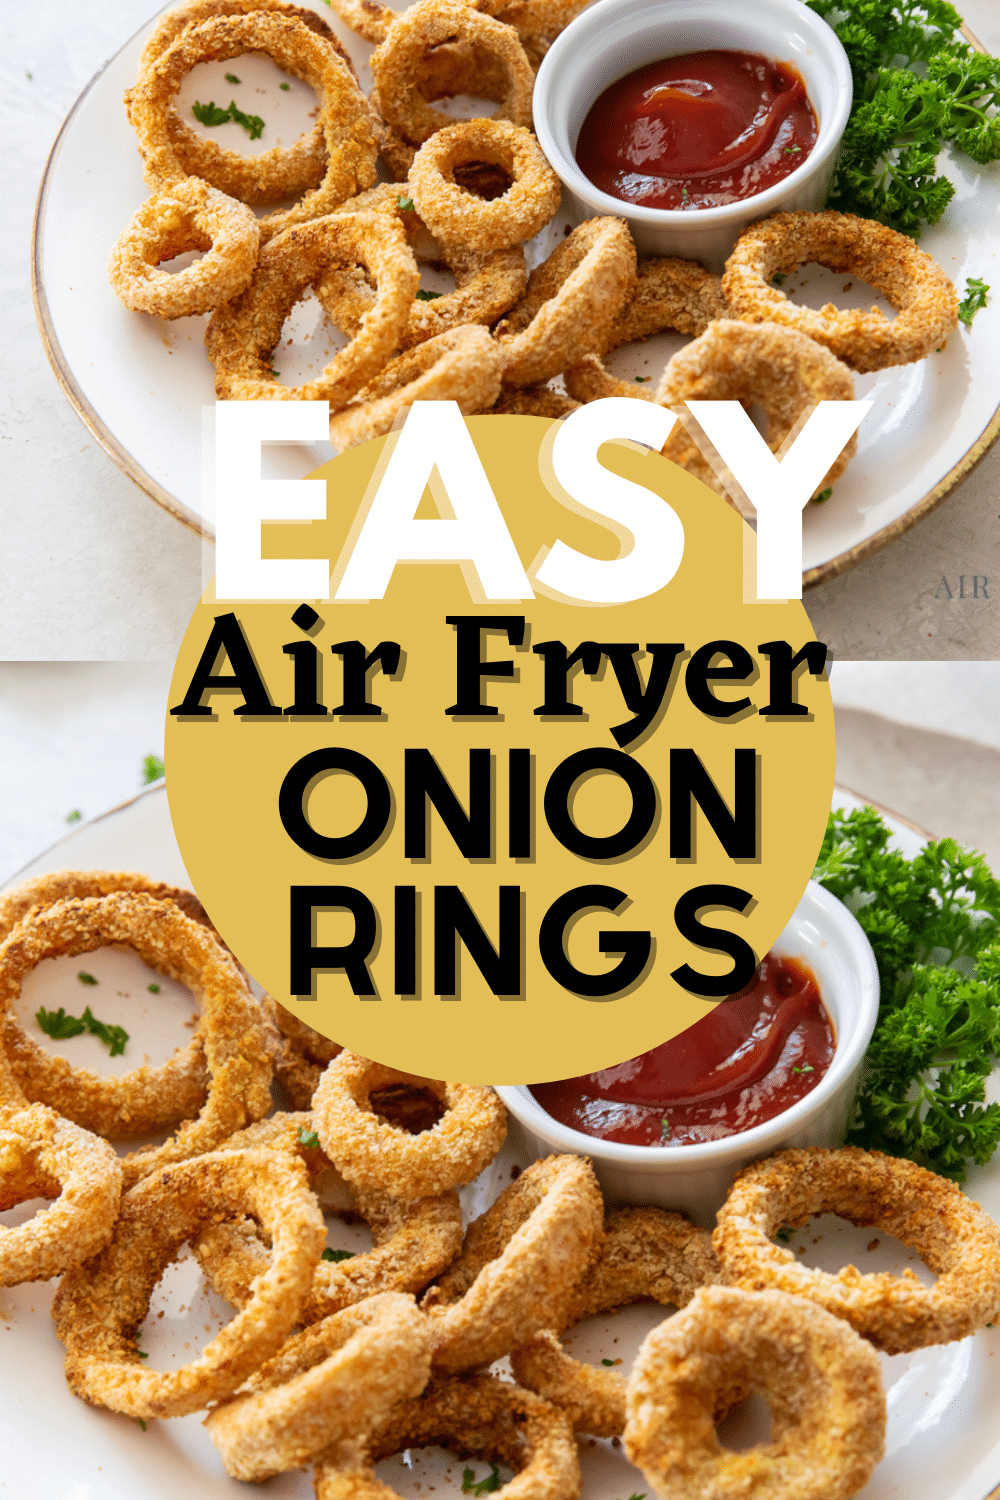 These crispy seasoned onion rings are so easy and quick to make! Enjoy healthier onion rings whenever you like with this simple Air Fryer Onion Rings recipe. #onionrings #airfryeronionrings via @vegetarianmamma